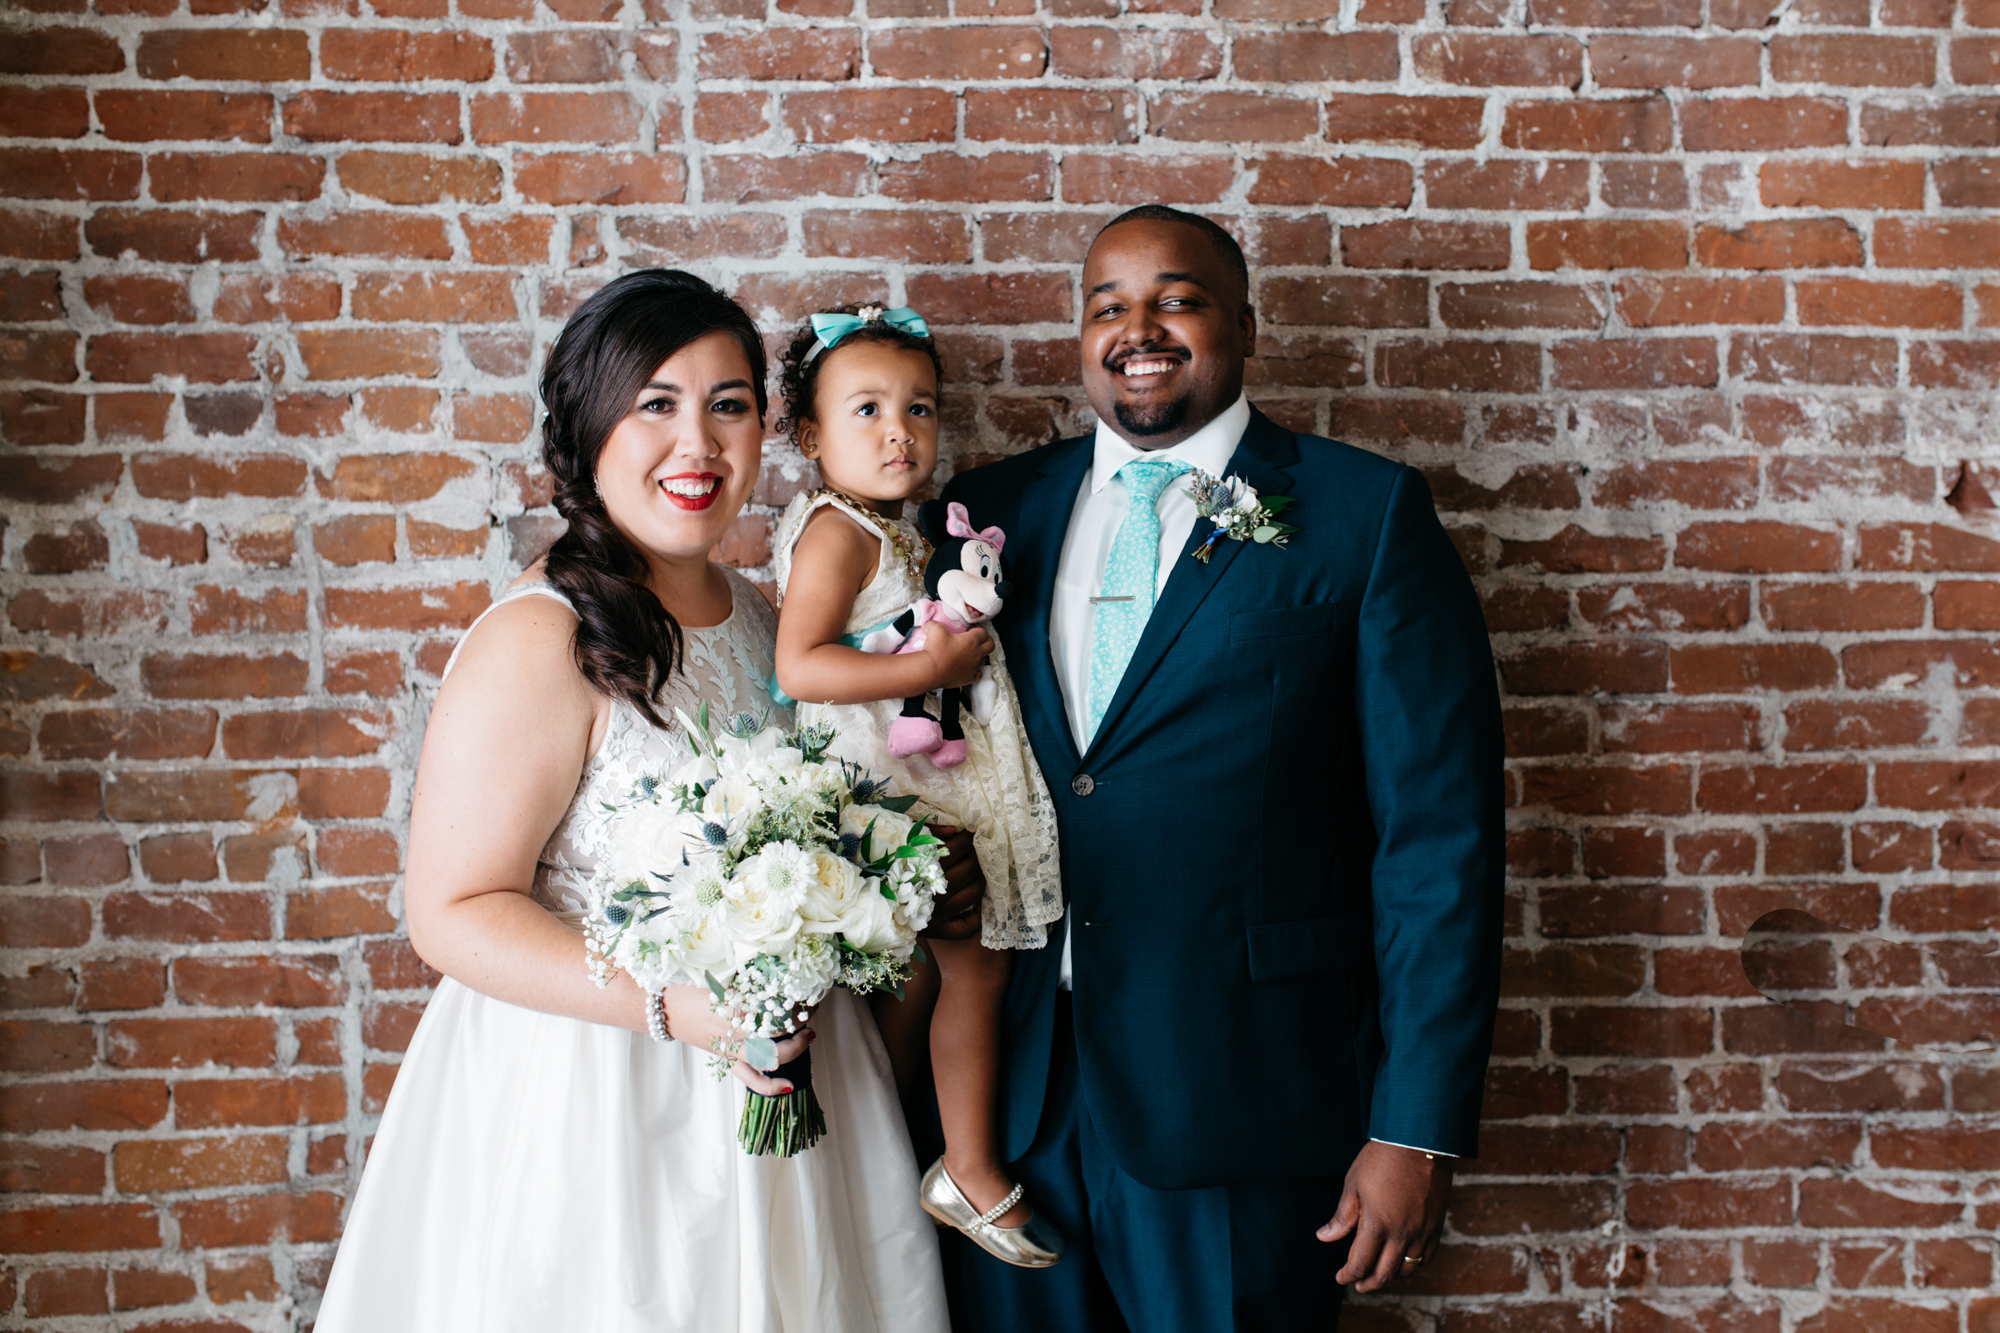 SamErica Studios - Los Angeles Wedding Photographer - The Loft on Pine-69.jpg